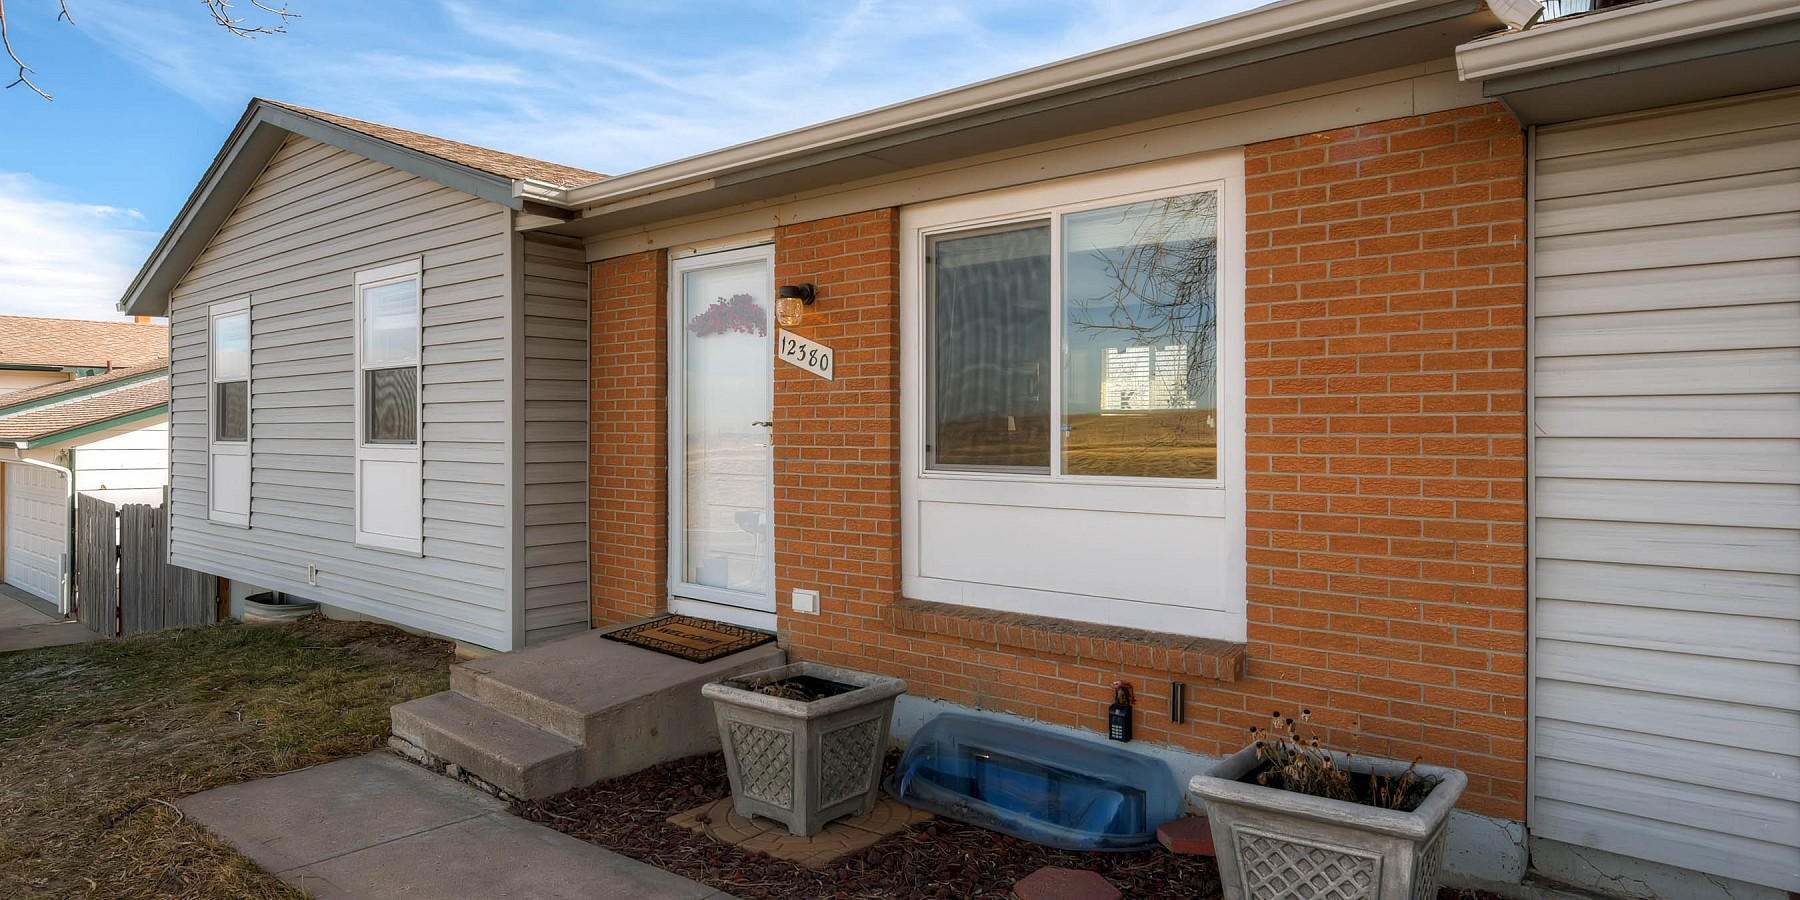 12380 West Quincy Avenue, Morrison, CO 80465